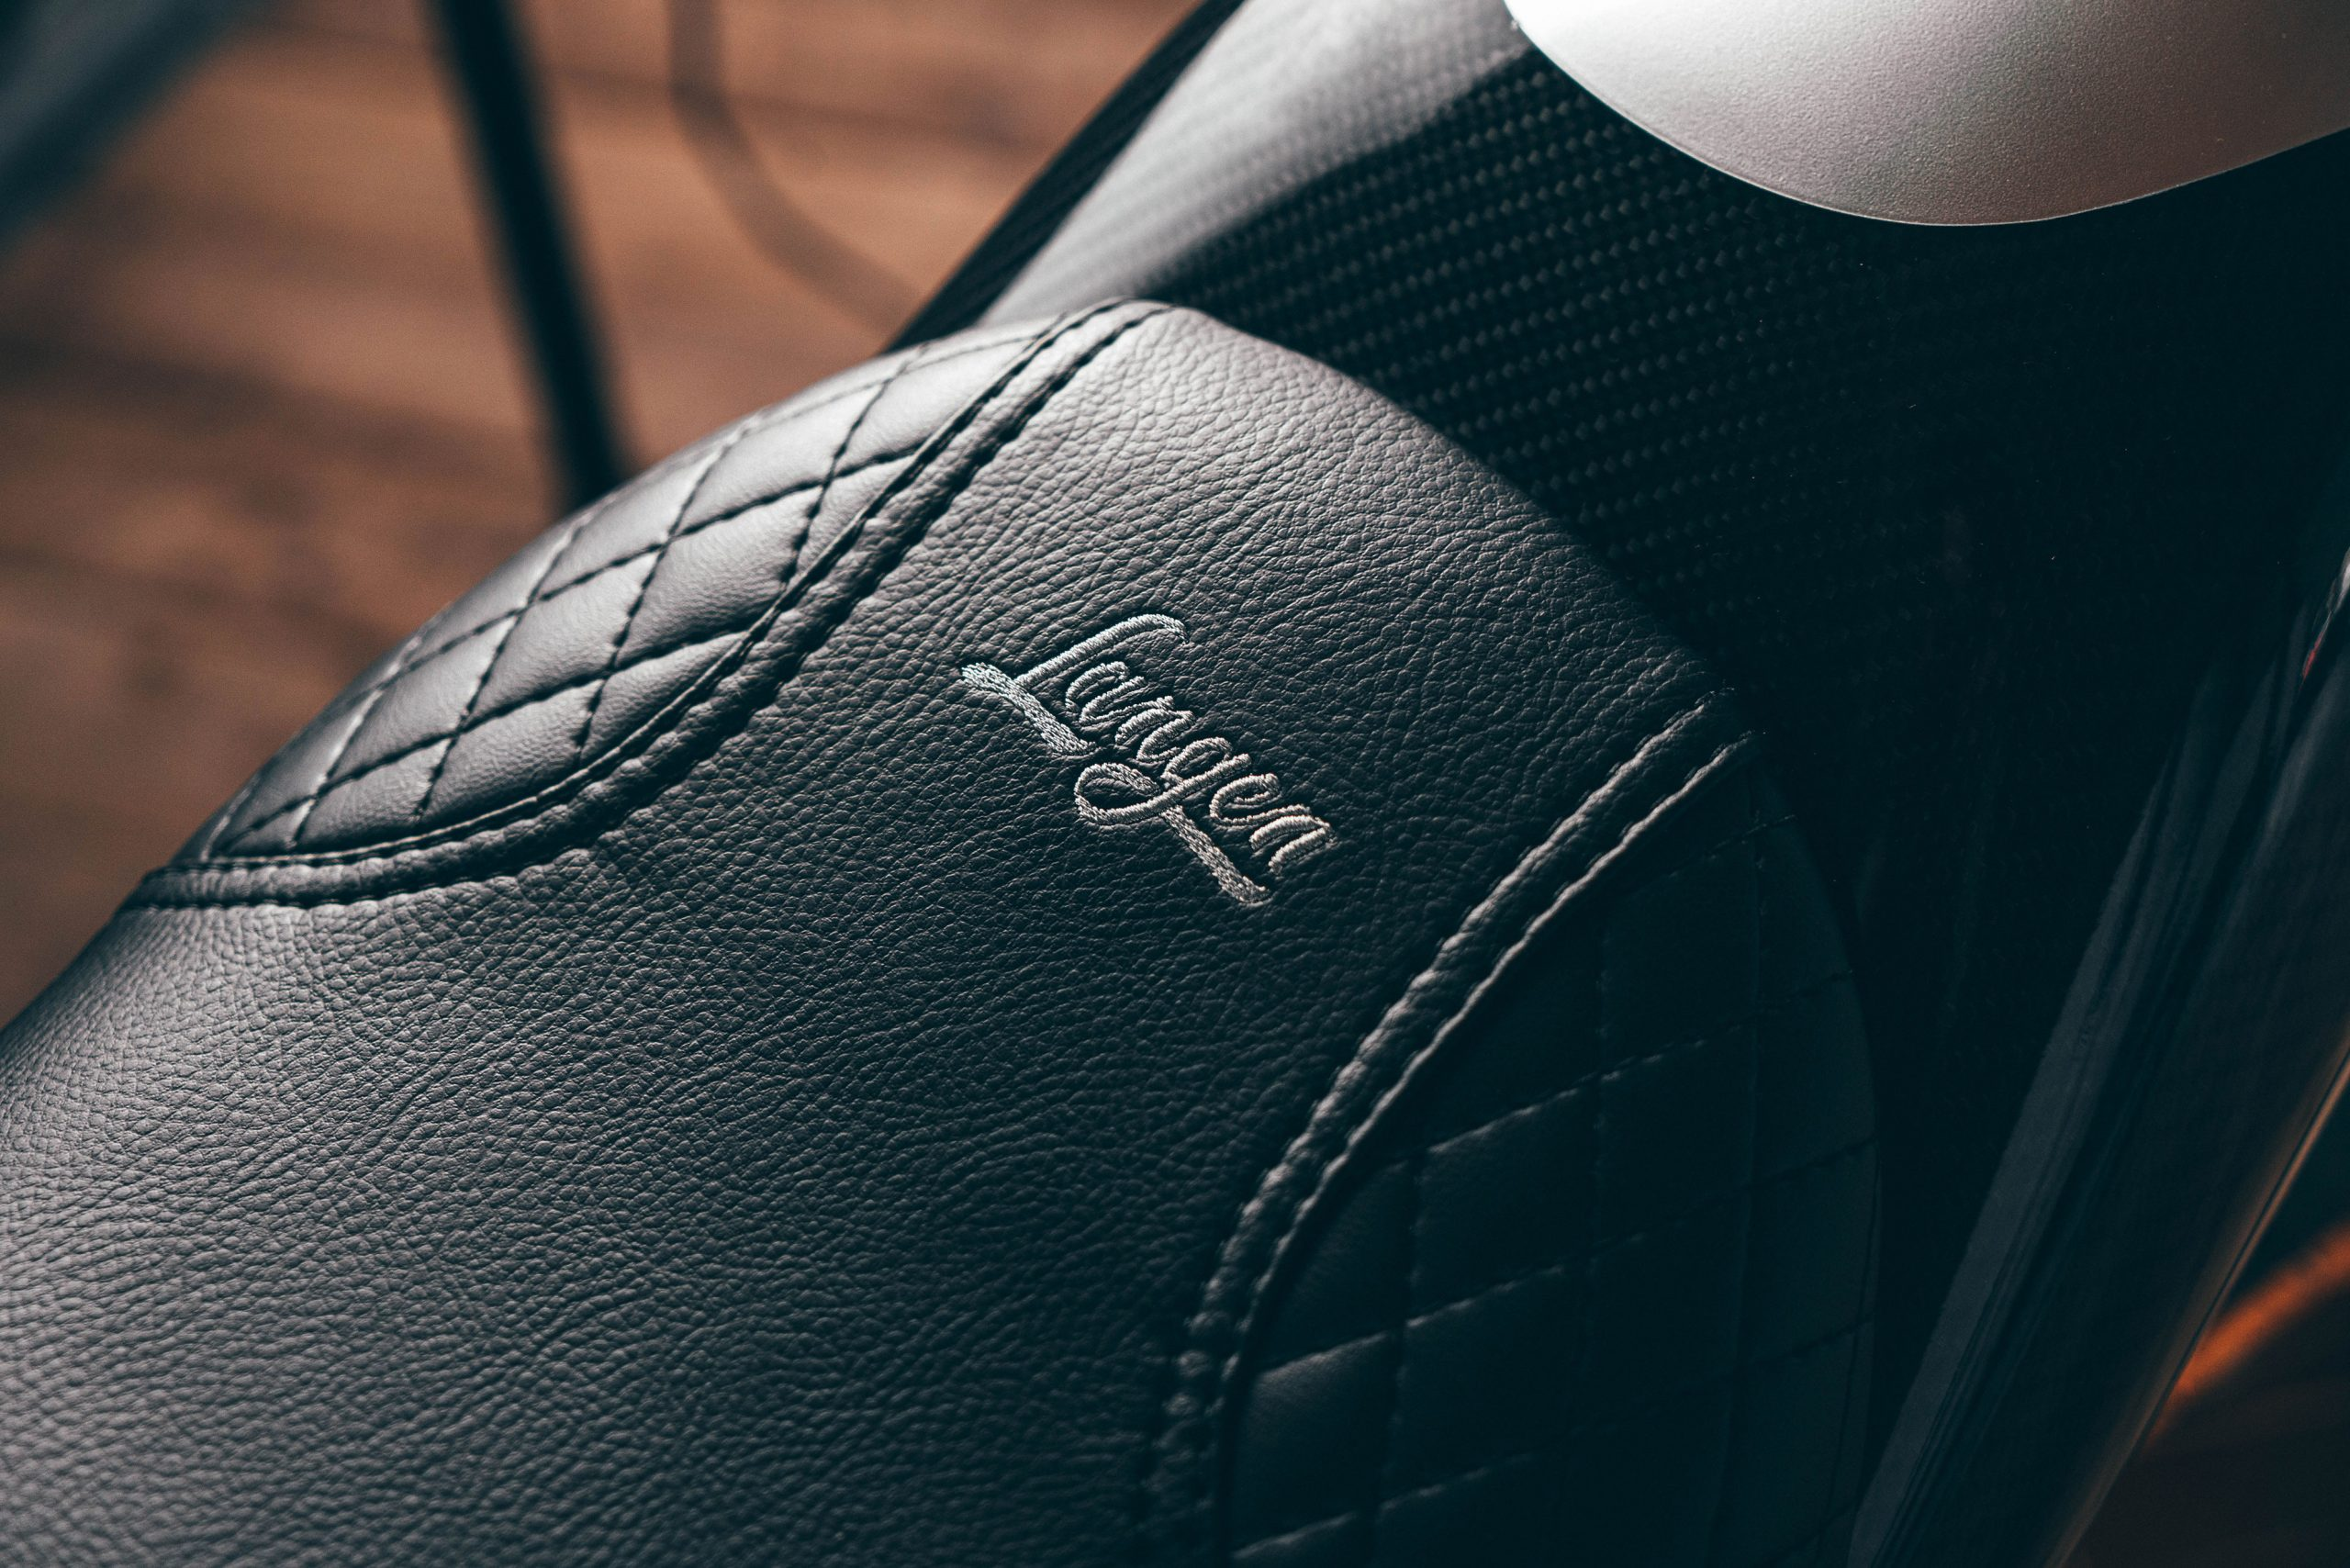 Langen Motorcycles Two Stroke leather seat embroidery detail